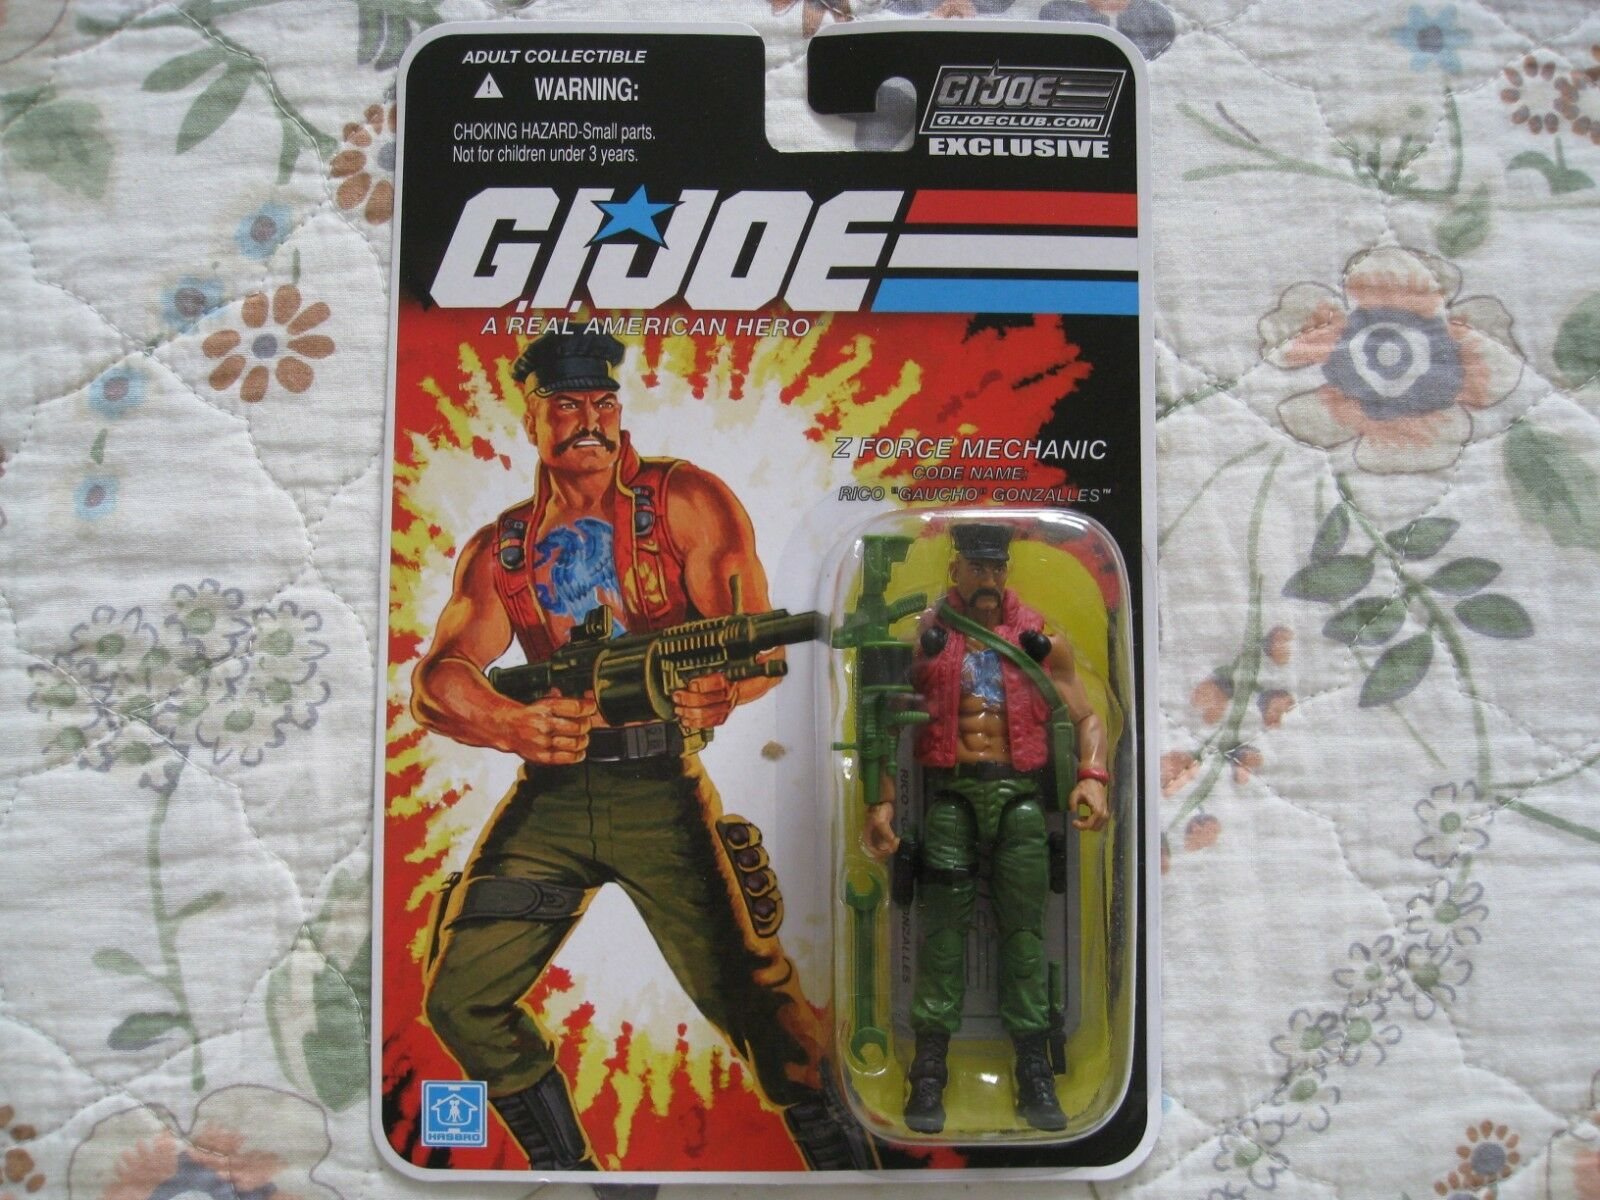 GI JOE COLLECTOR'S CLUB EXCLUSIVE Z FORCE MECHANIC RICO RICO RICO  GAUCHO  GONZtuttiES e73480